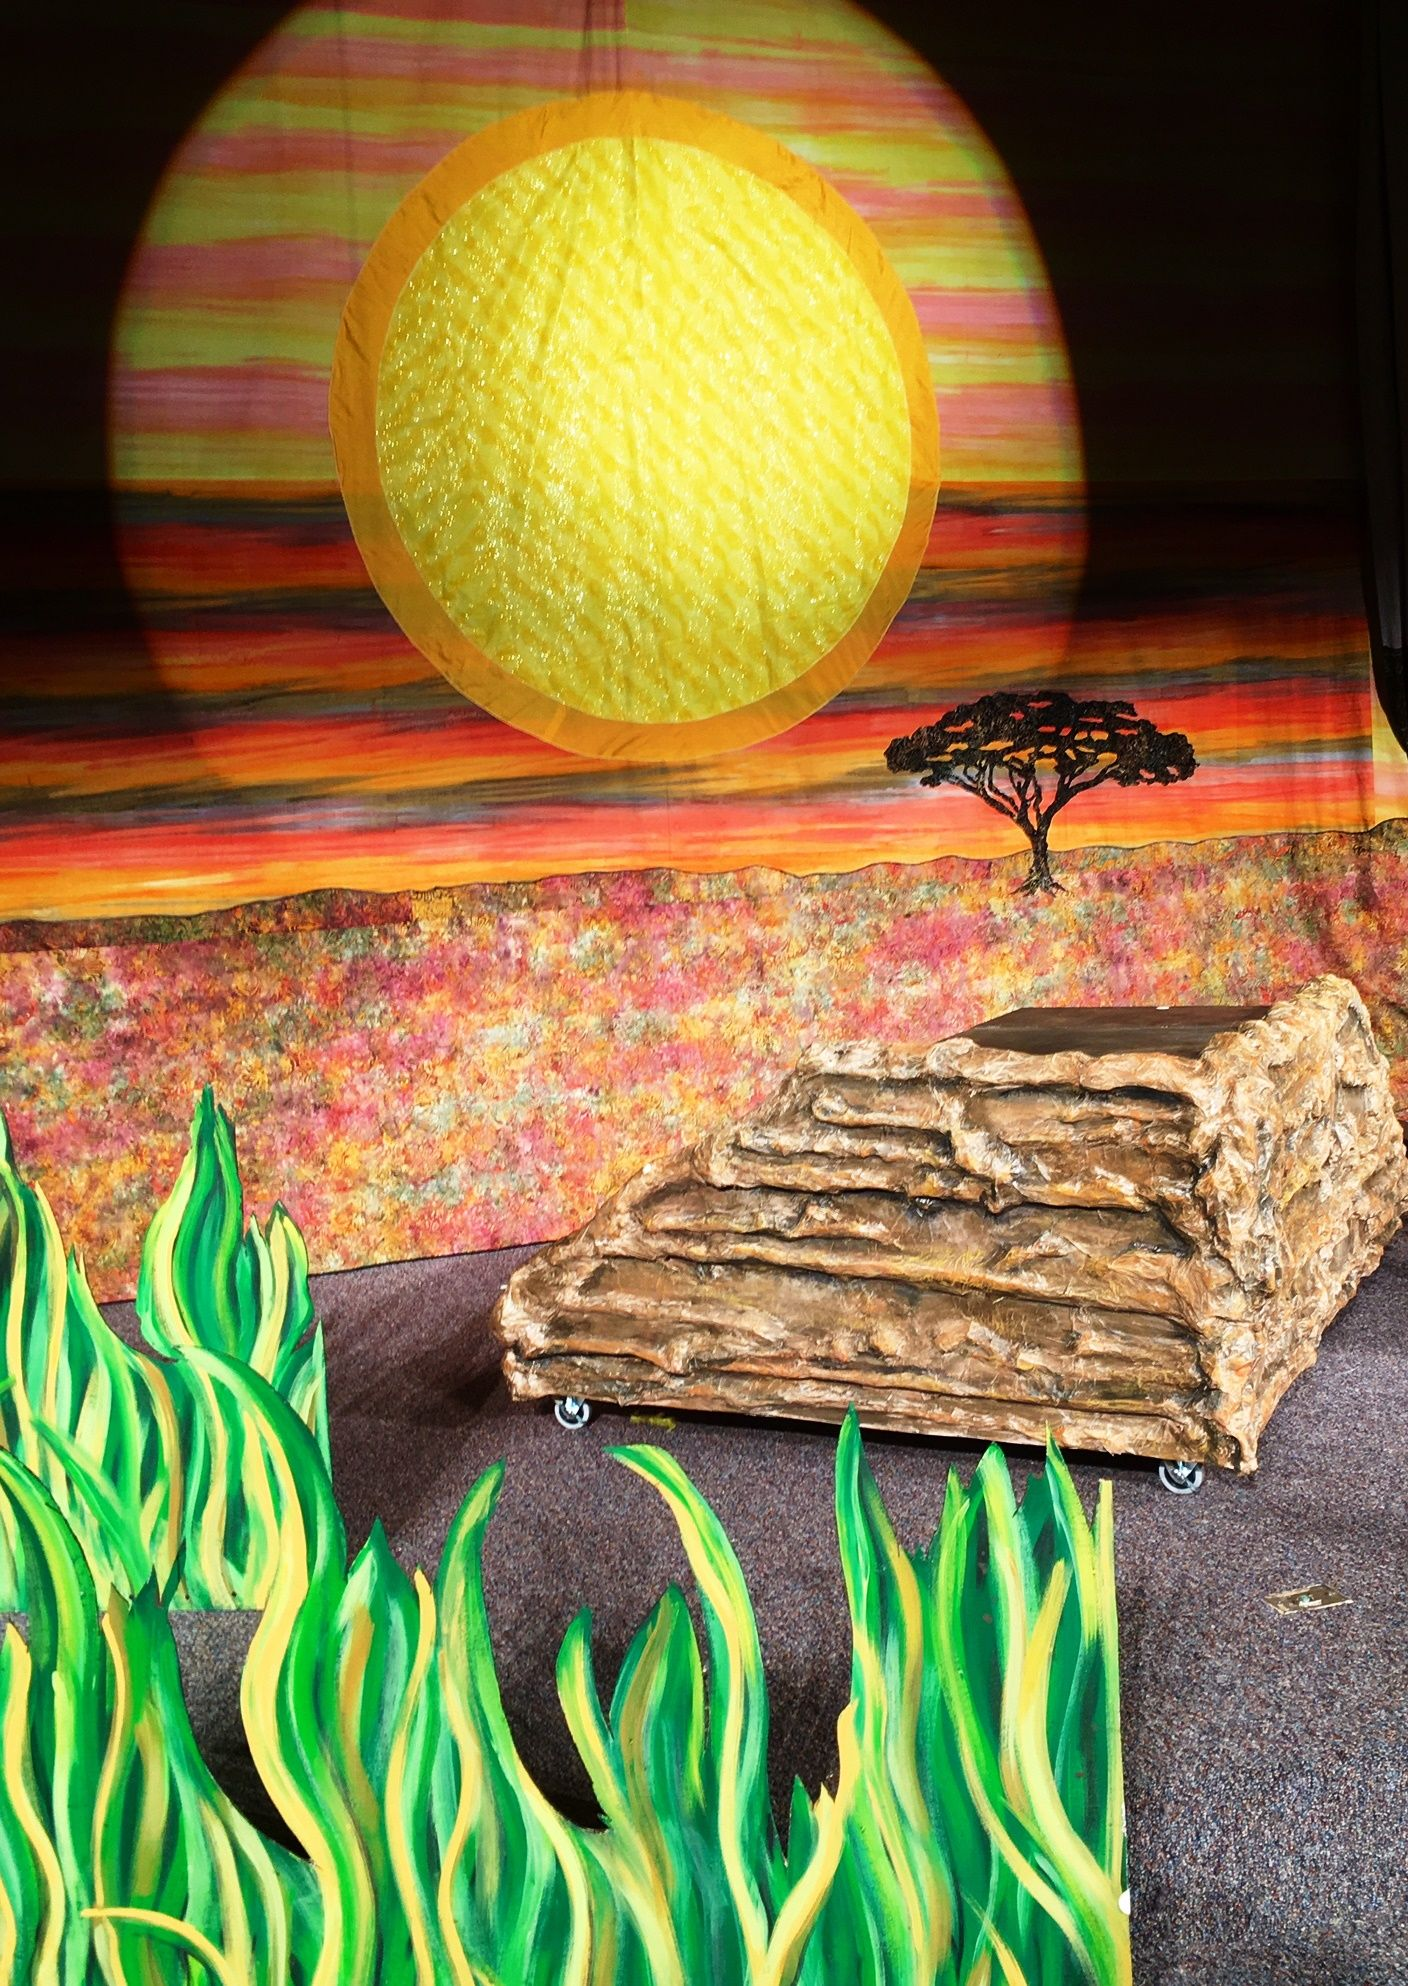 b6bc97d7143d Lion King Jr set complete with backdrop, Pride Rock and grass lands.  Available for rental from Give 'Em Props Studio, LLC. Contact us for more  information. ...